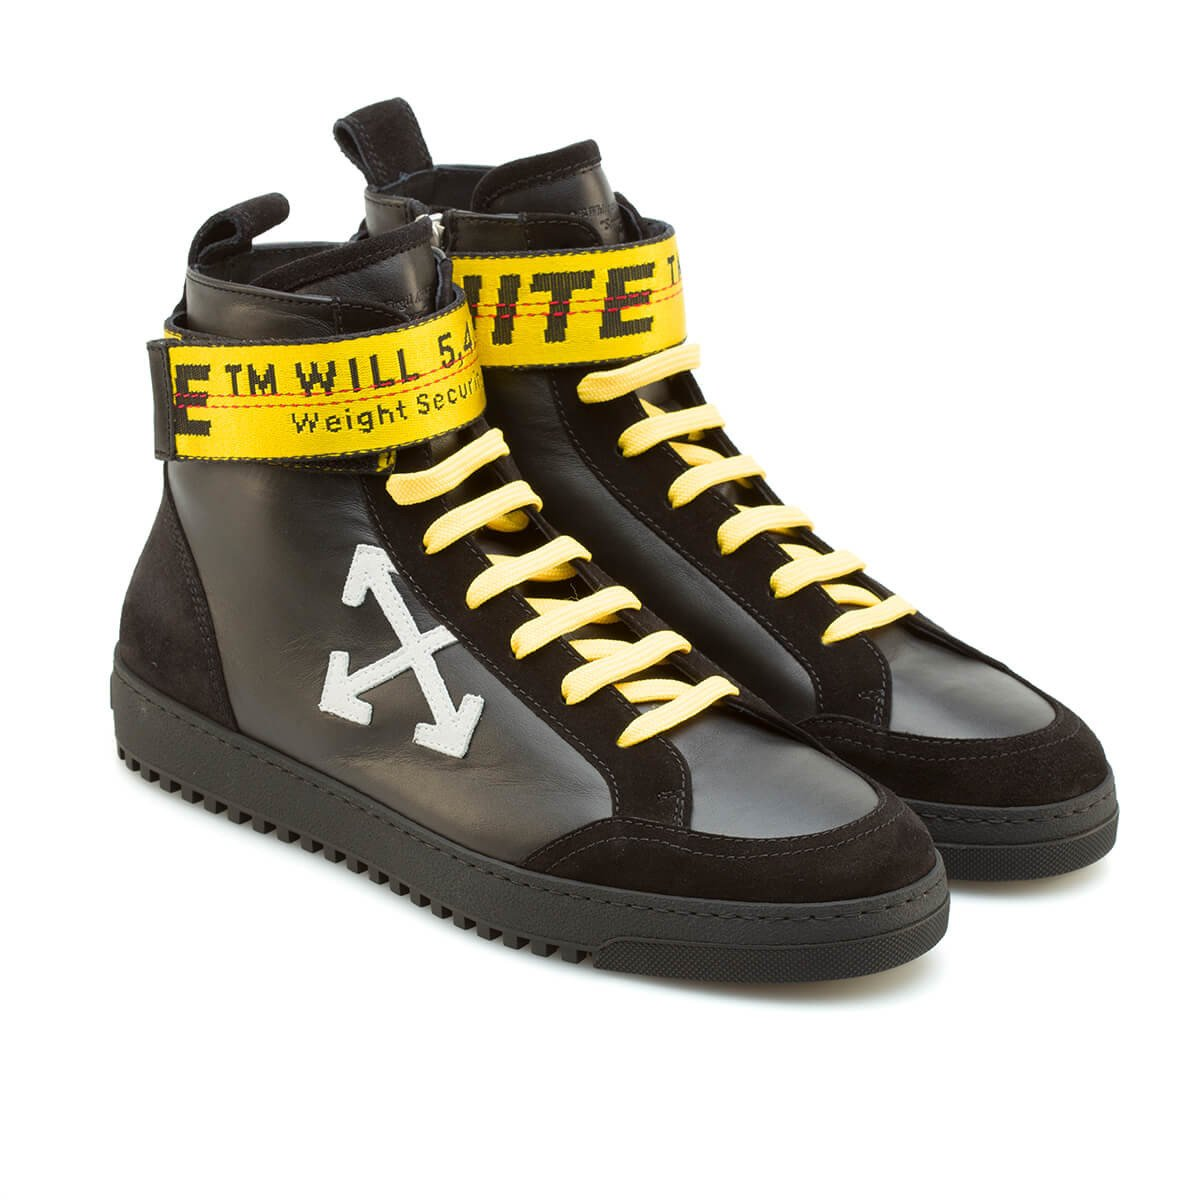 OFF-WHITE High-Top Sneakers Black